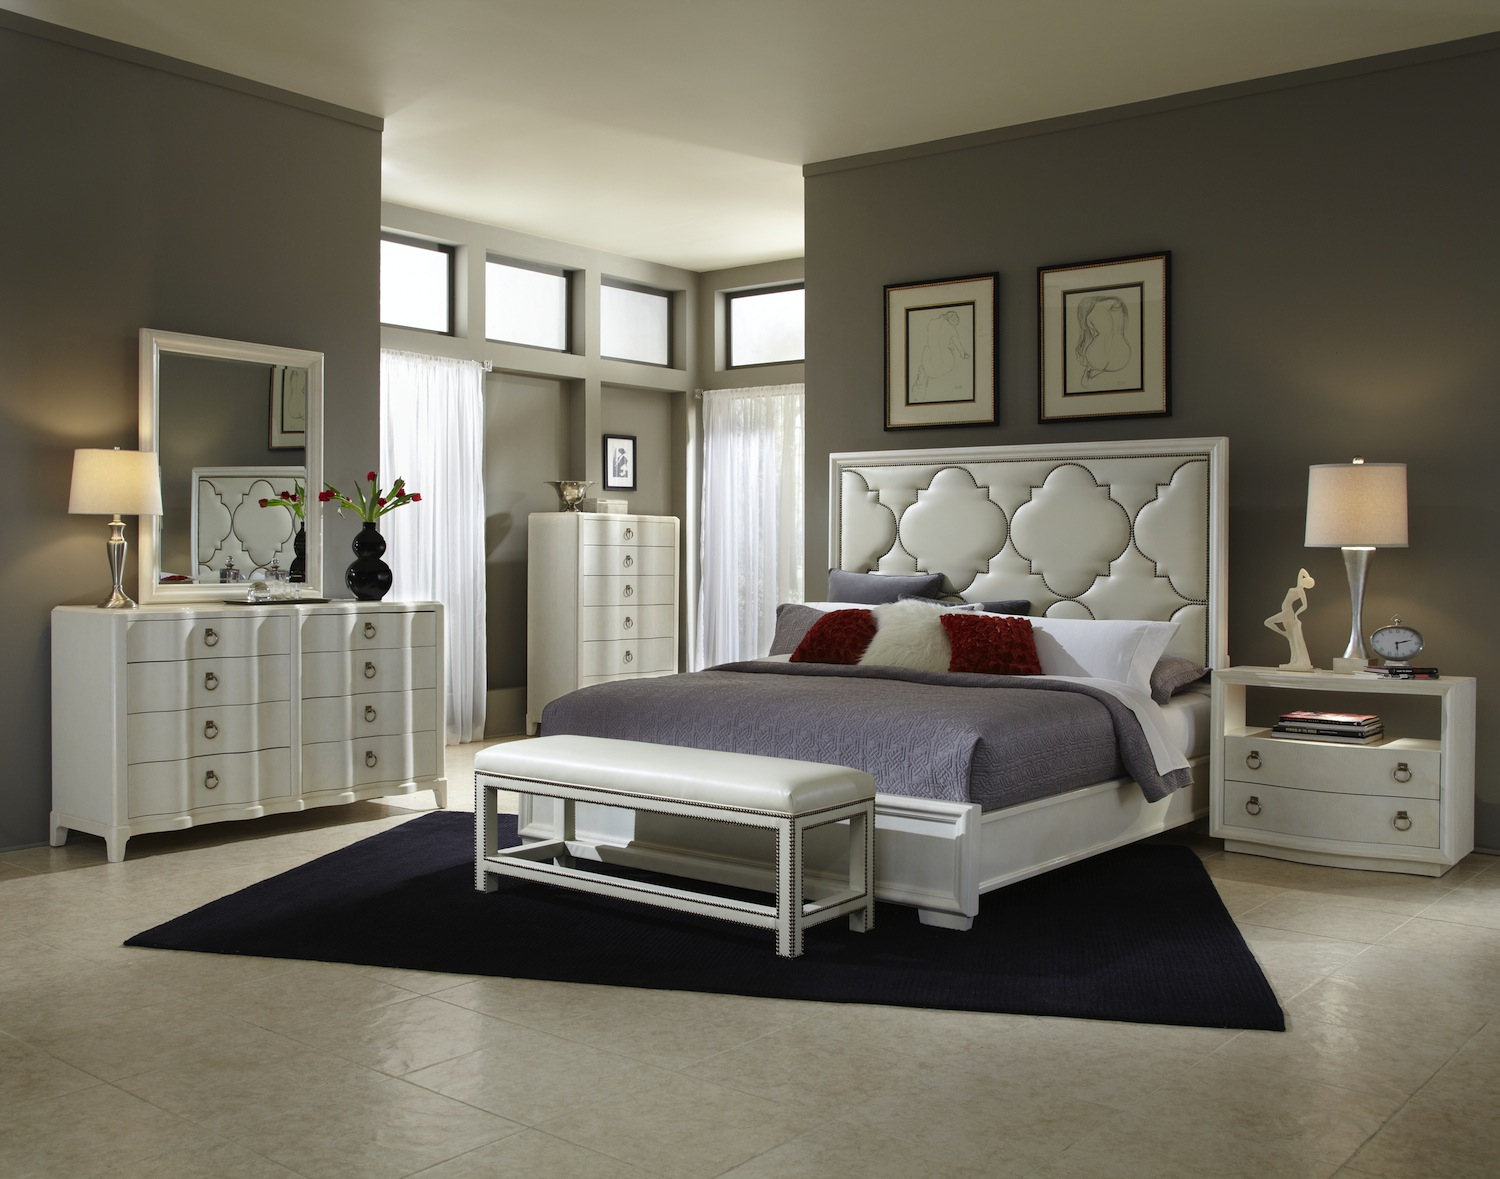 Glam bedroom set